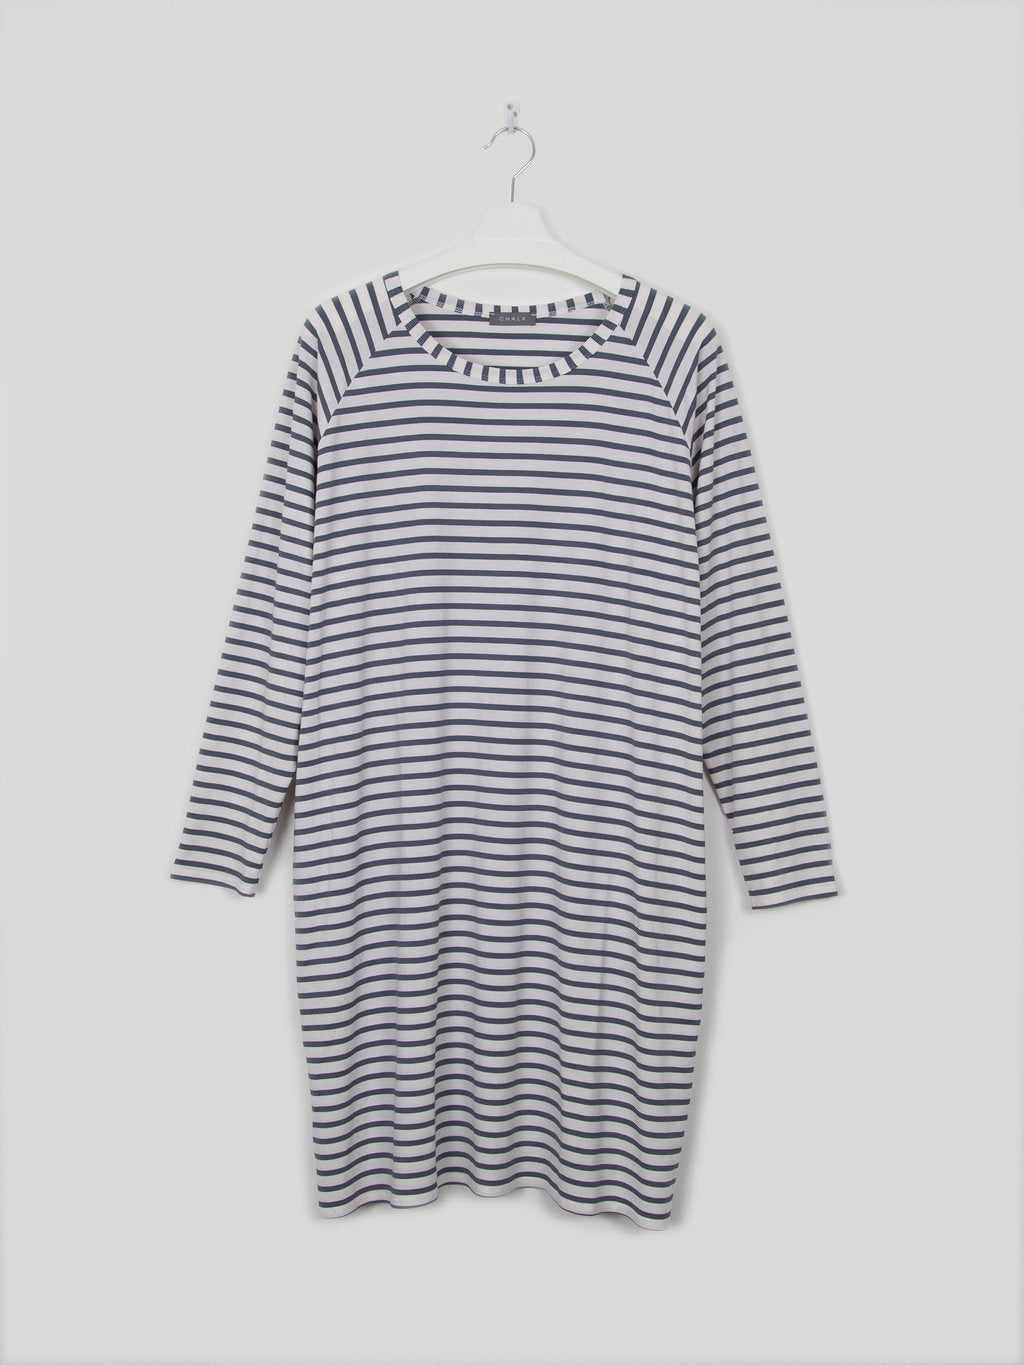 Chalk Brody Dress Stripe White/Charcoal